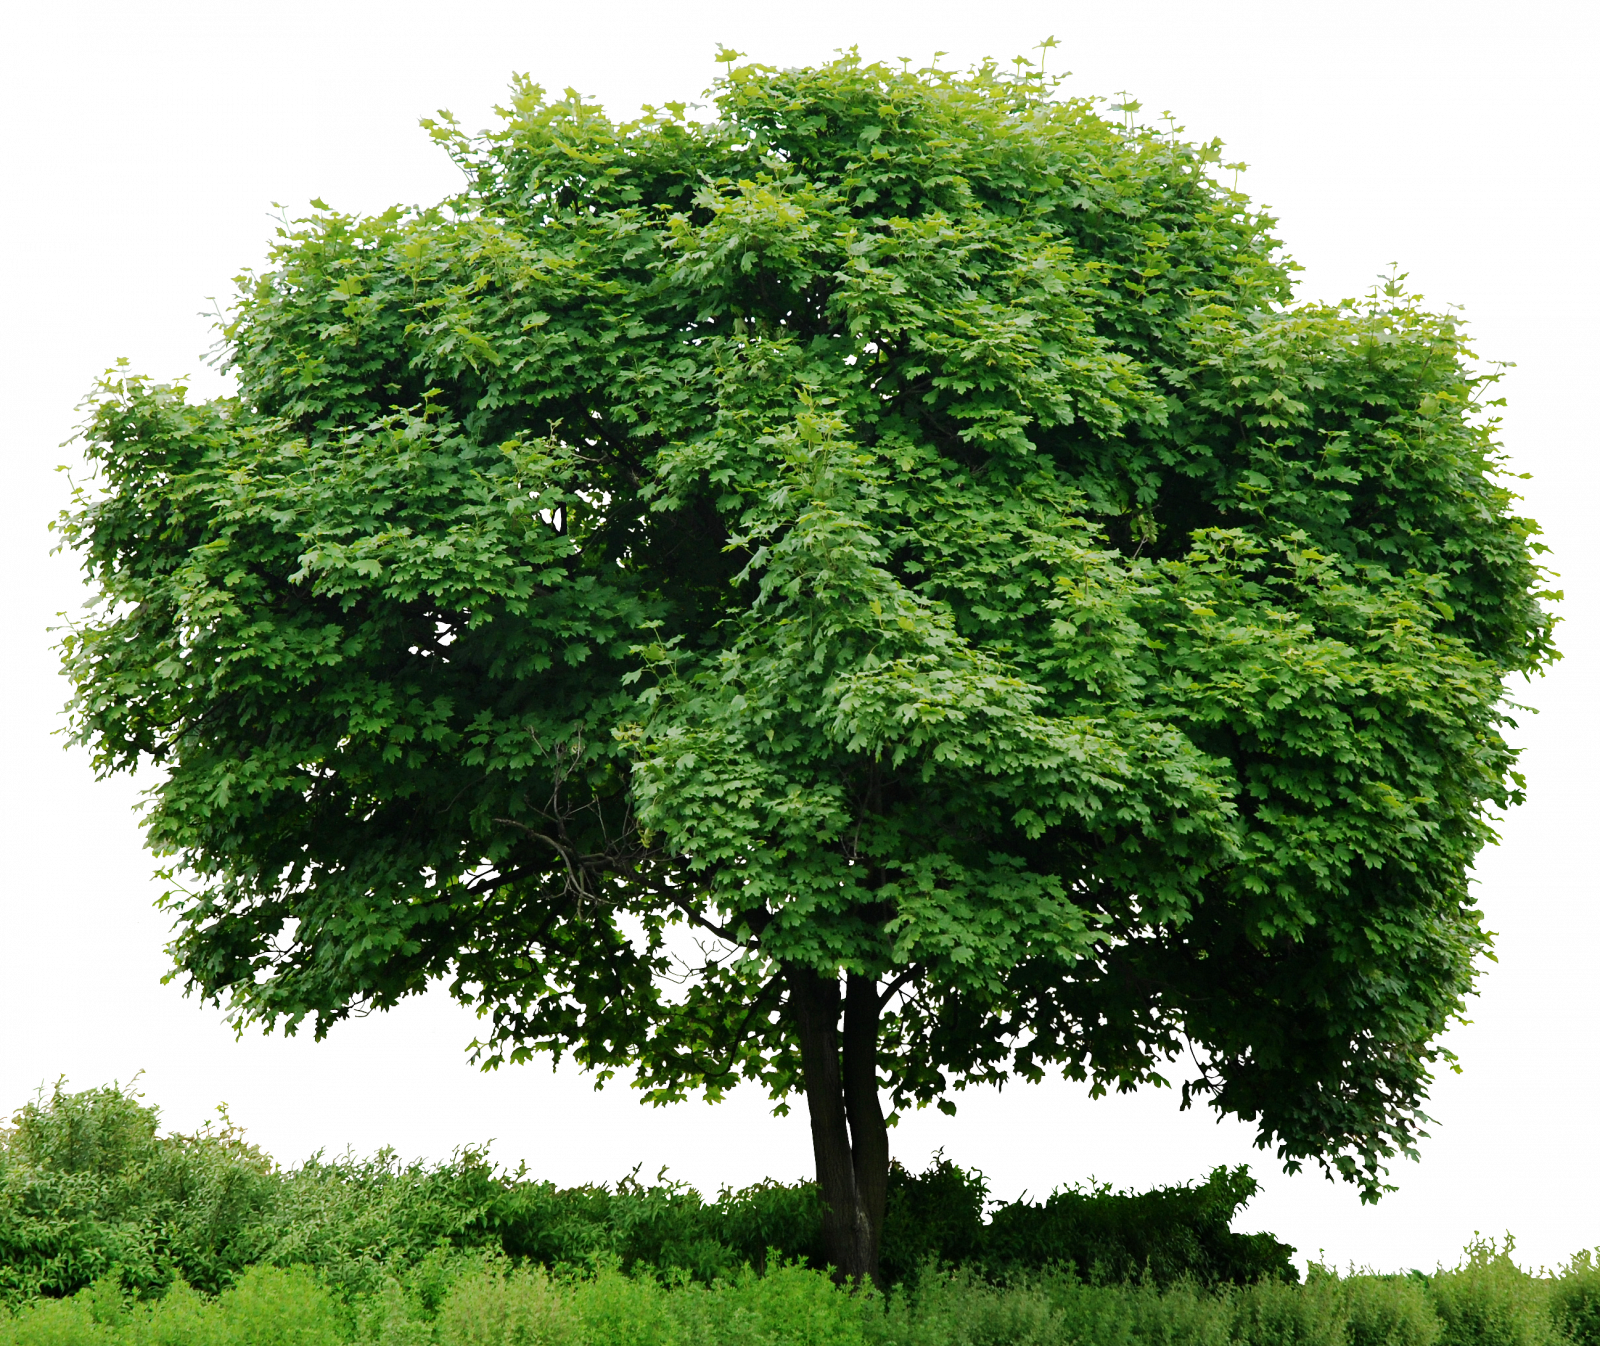 Group of trees png. Tree image stock without